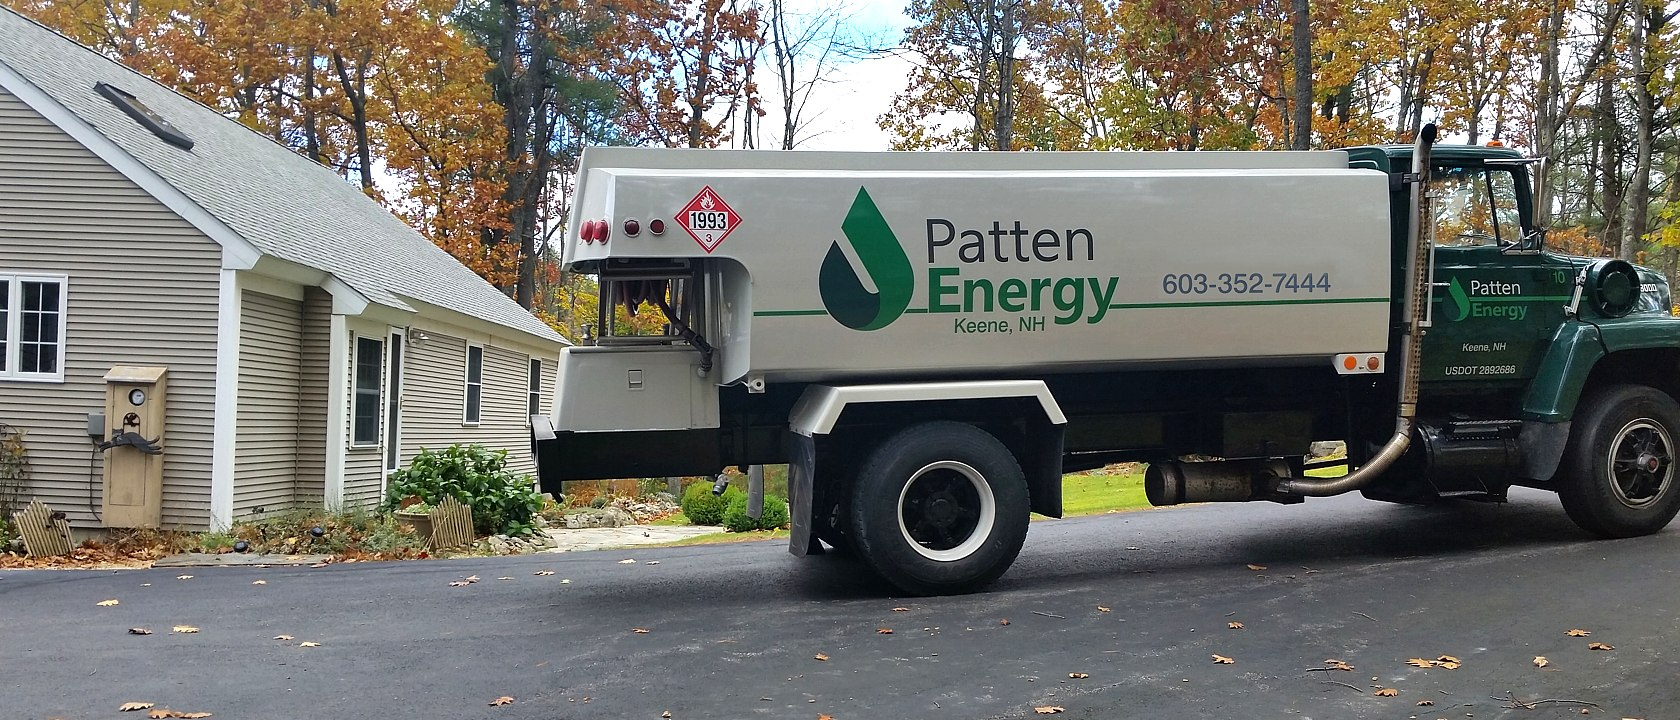 Contact Us for a Delivery from Patten Energy